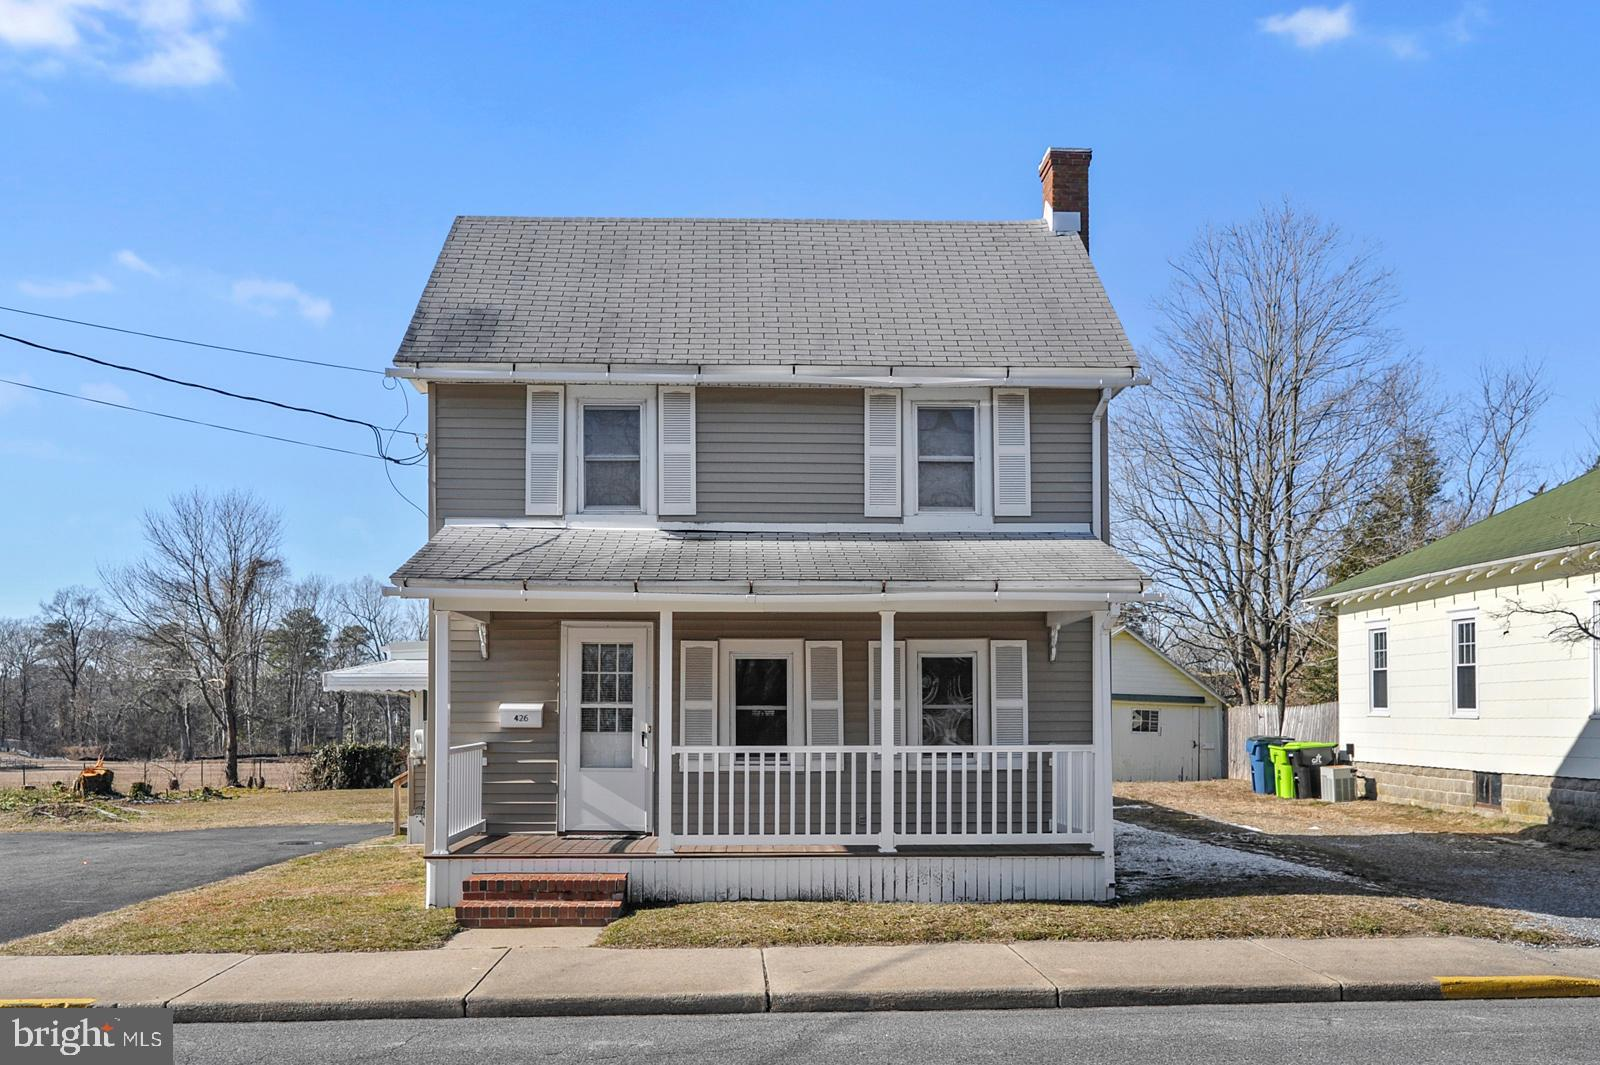 Welcome home! Located within walking distance of downtown Milton with specialty shops and home of th